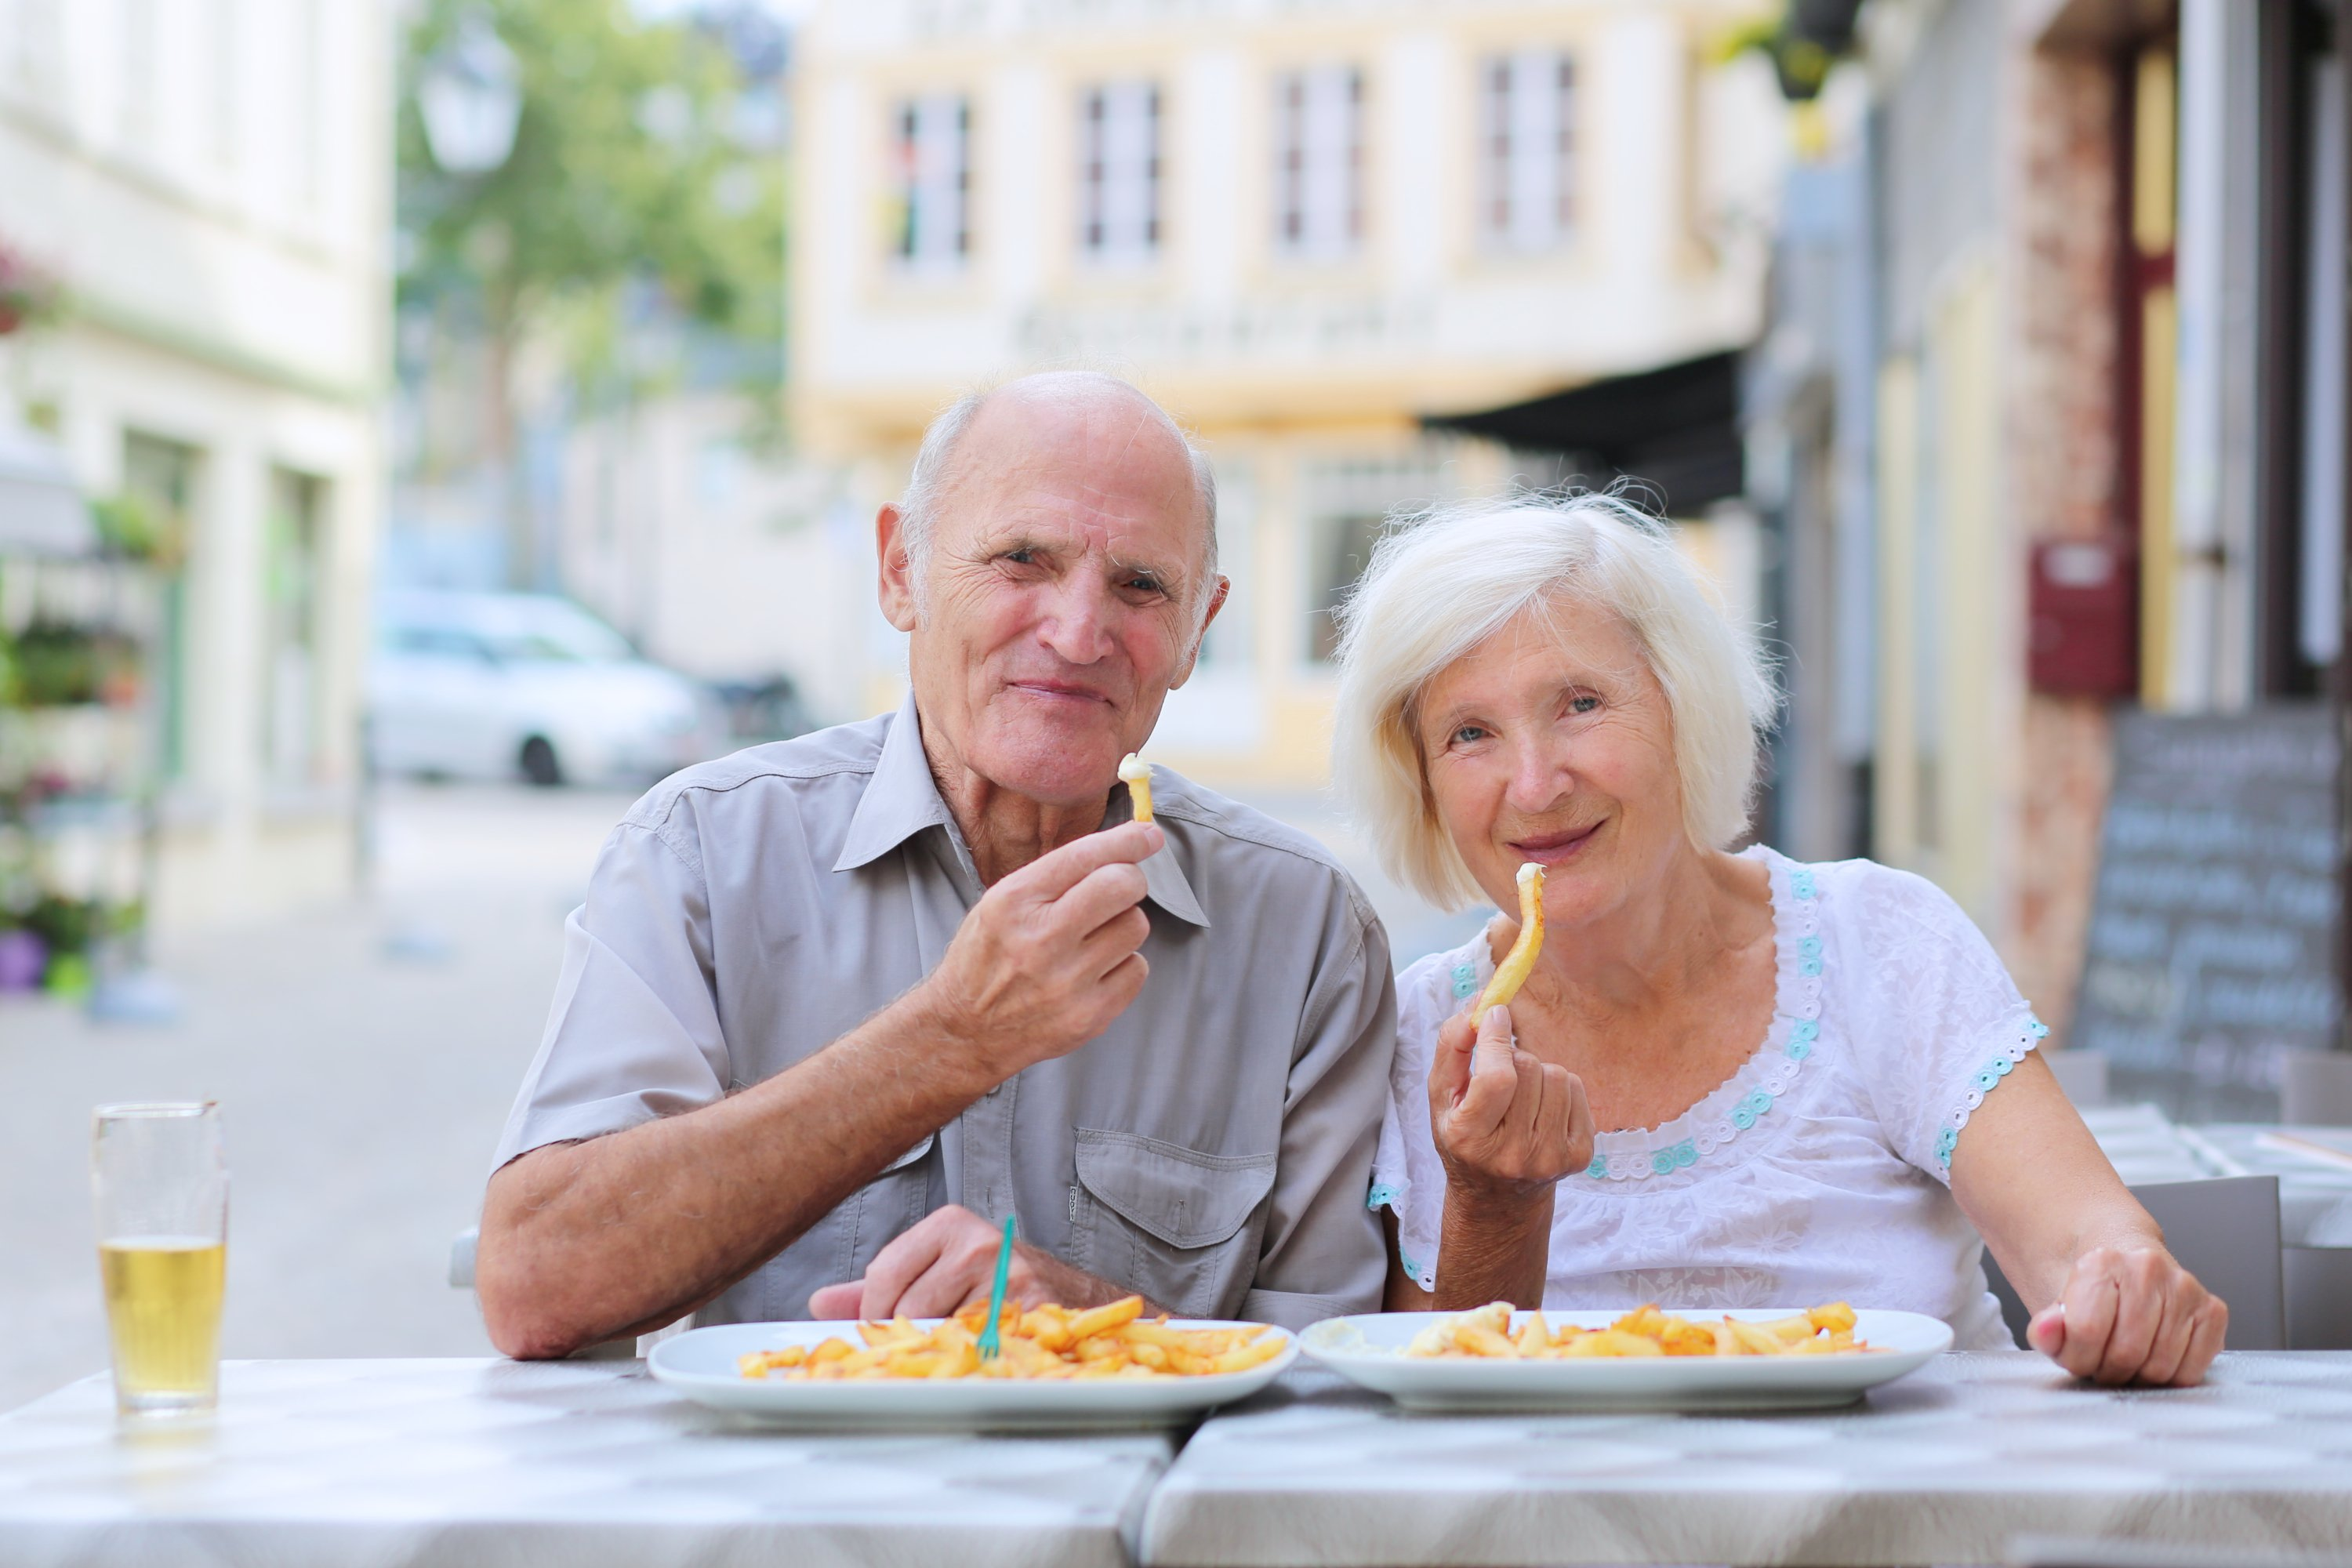 Happy active senior couple enjoying time together eating belgian french fries in outdoors street cafe on a summer day in typical European town | Photo: Shutterstock.com